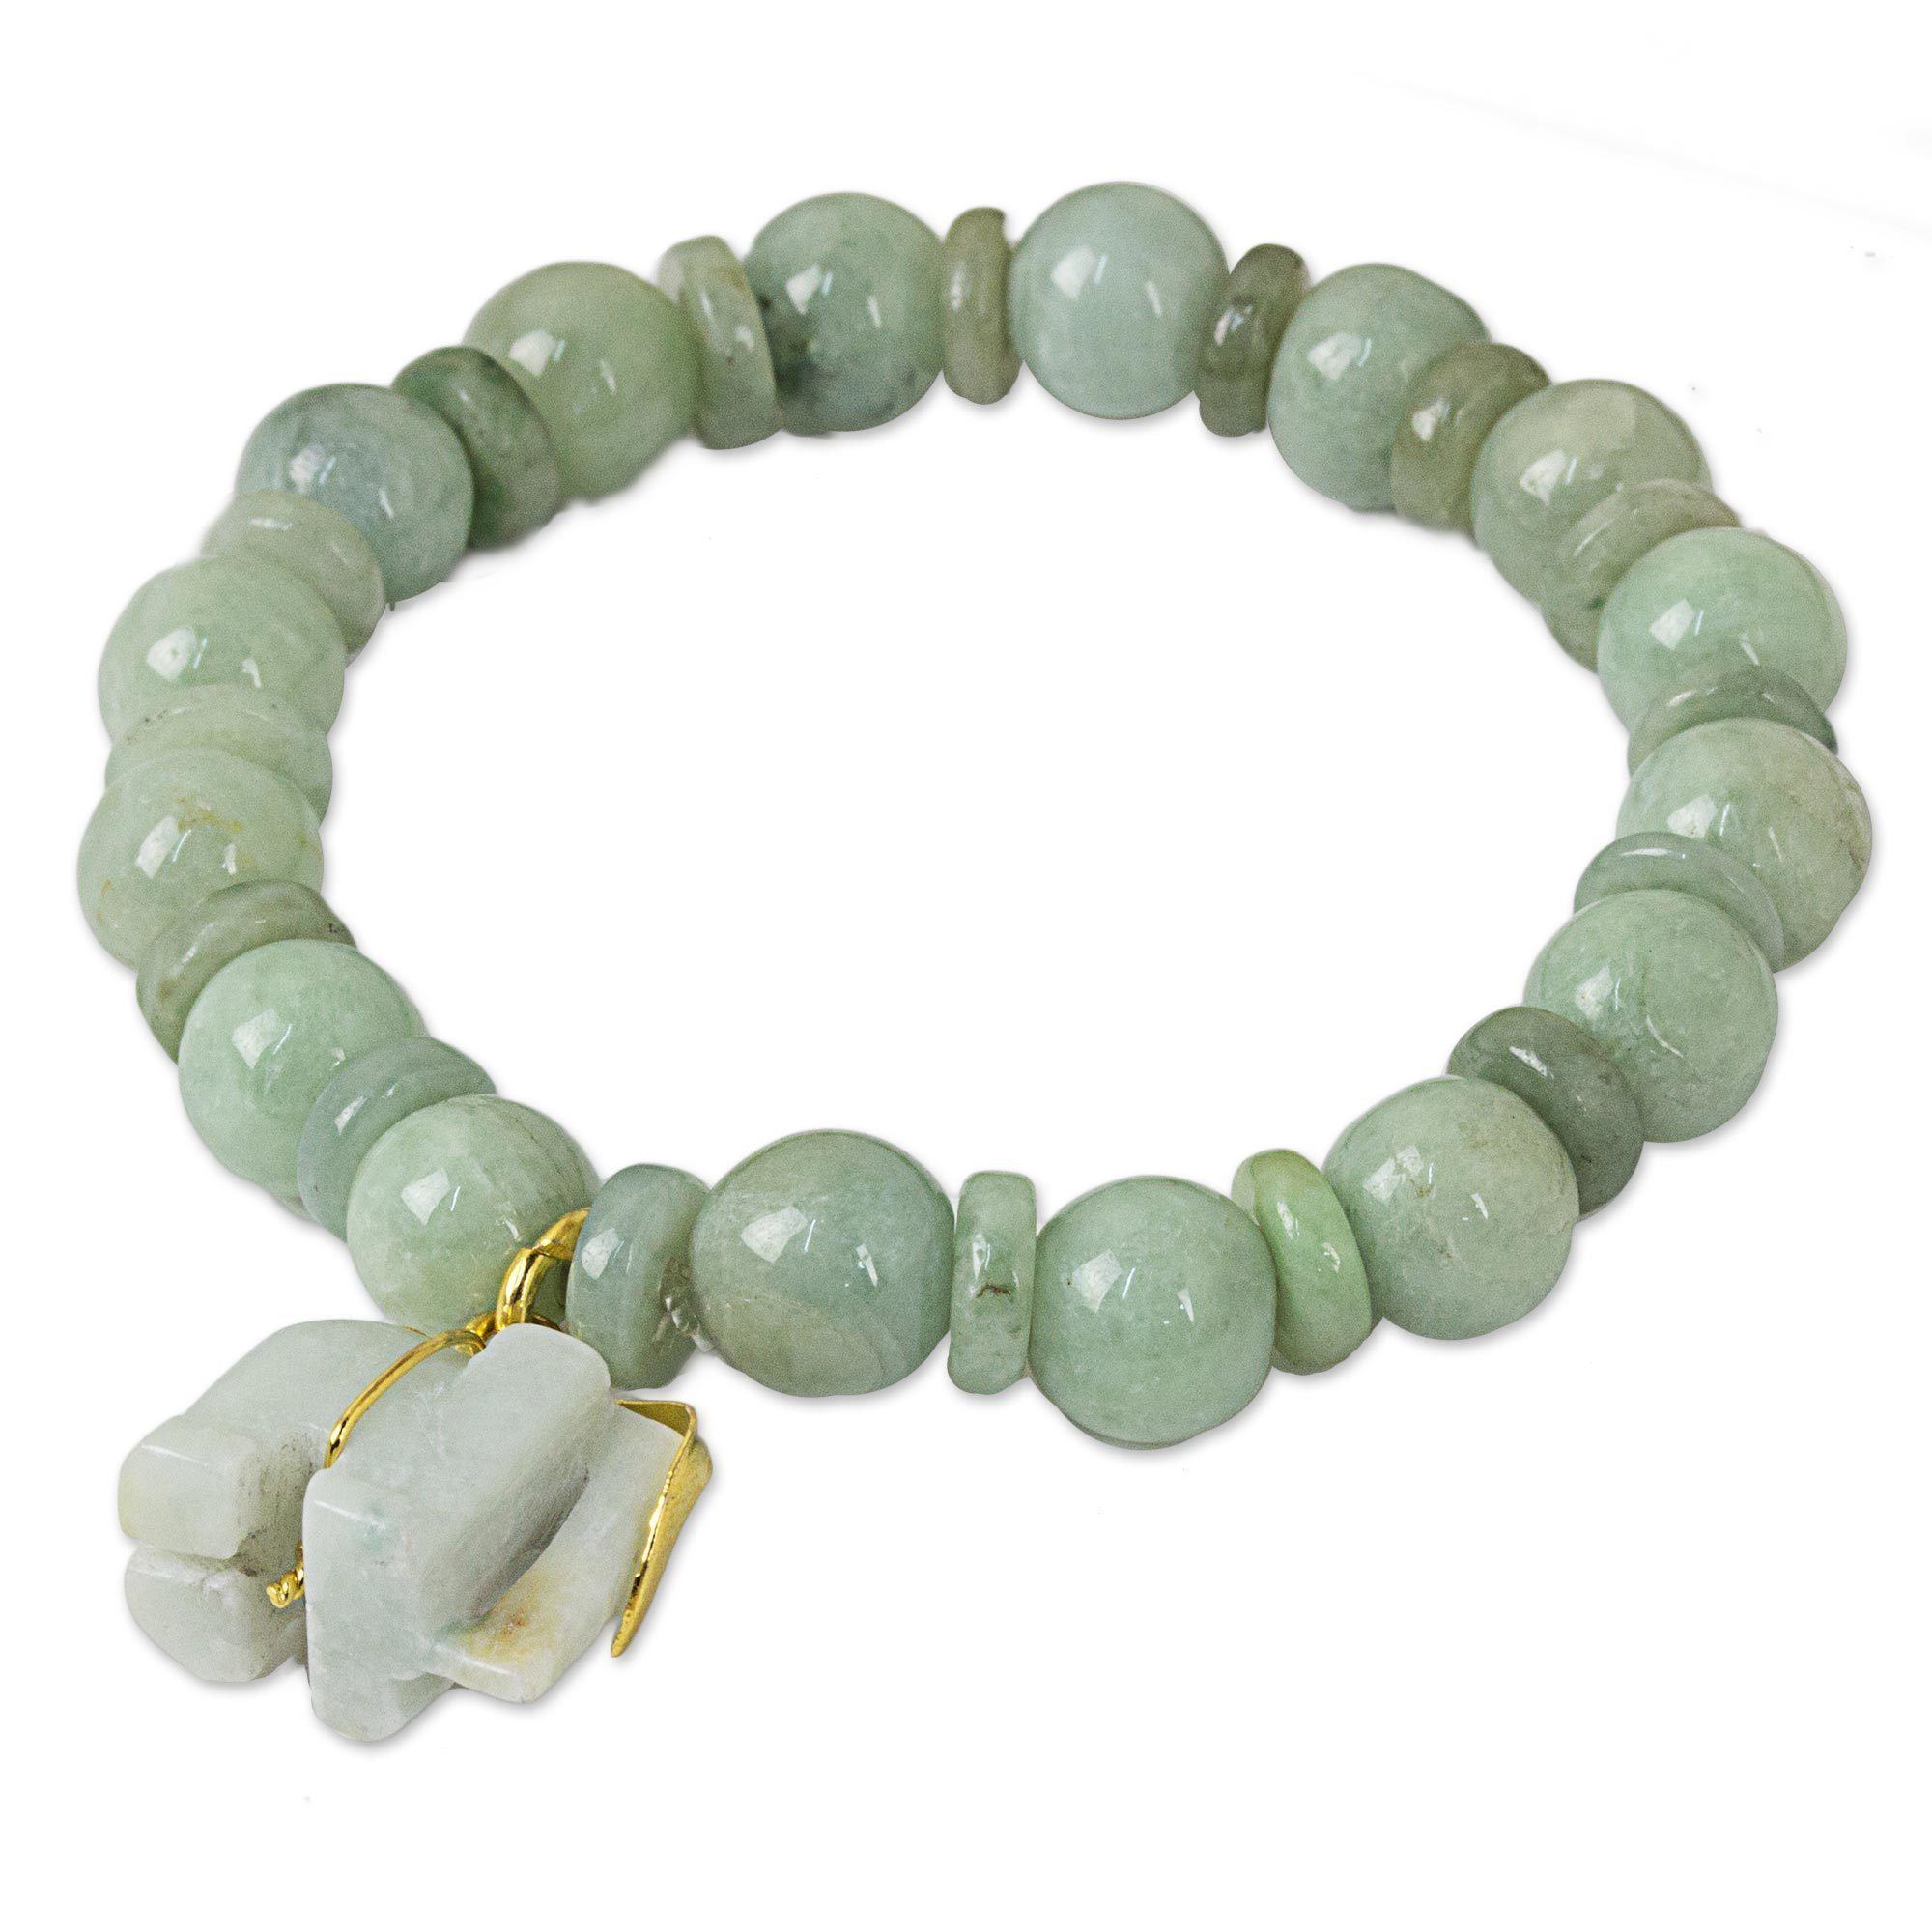 jade bracelet yoga dhgate bracelets and beads mala gongxumei men fashion product women from white pendant